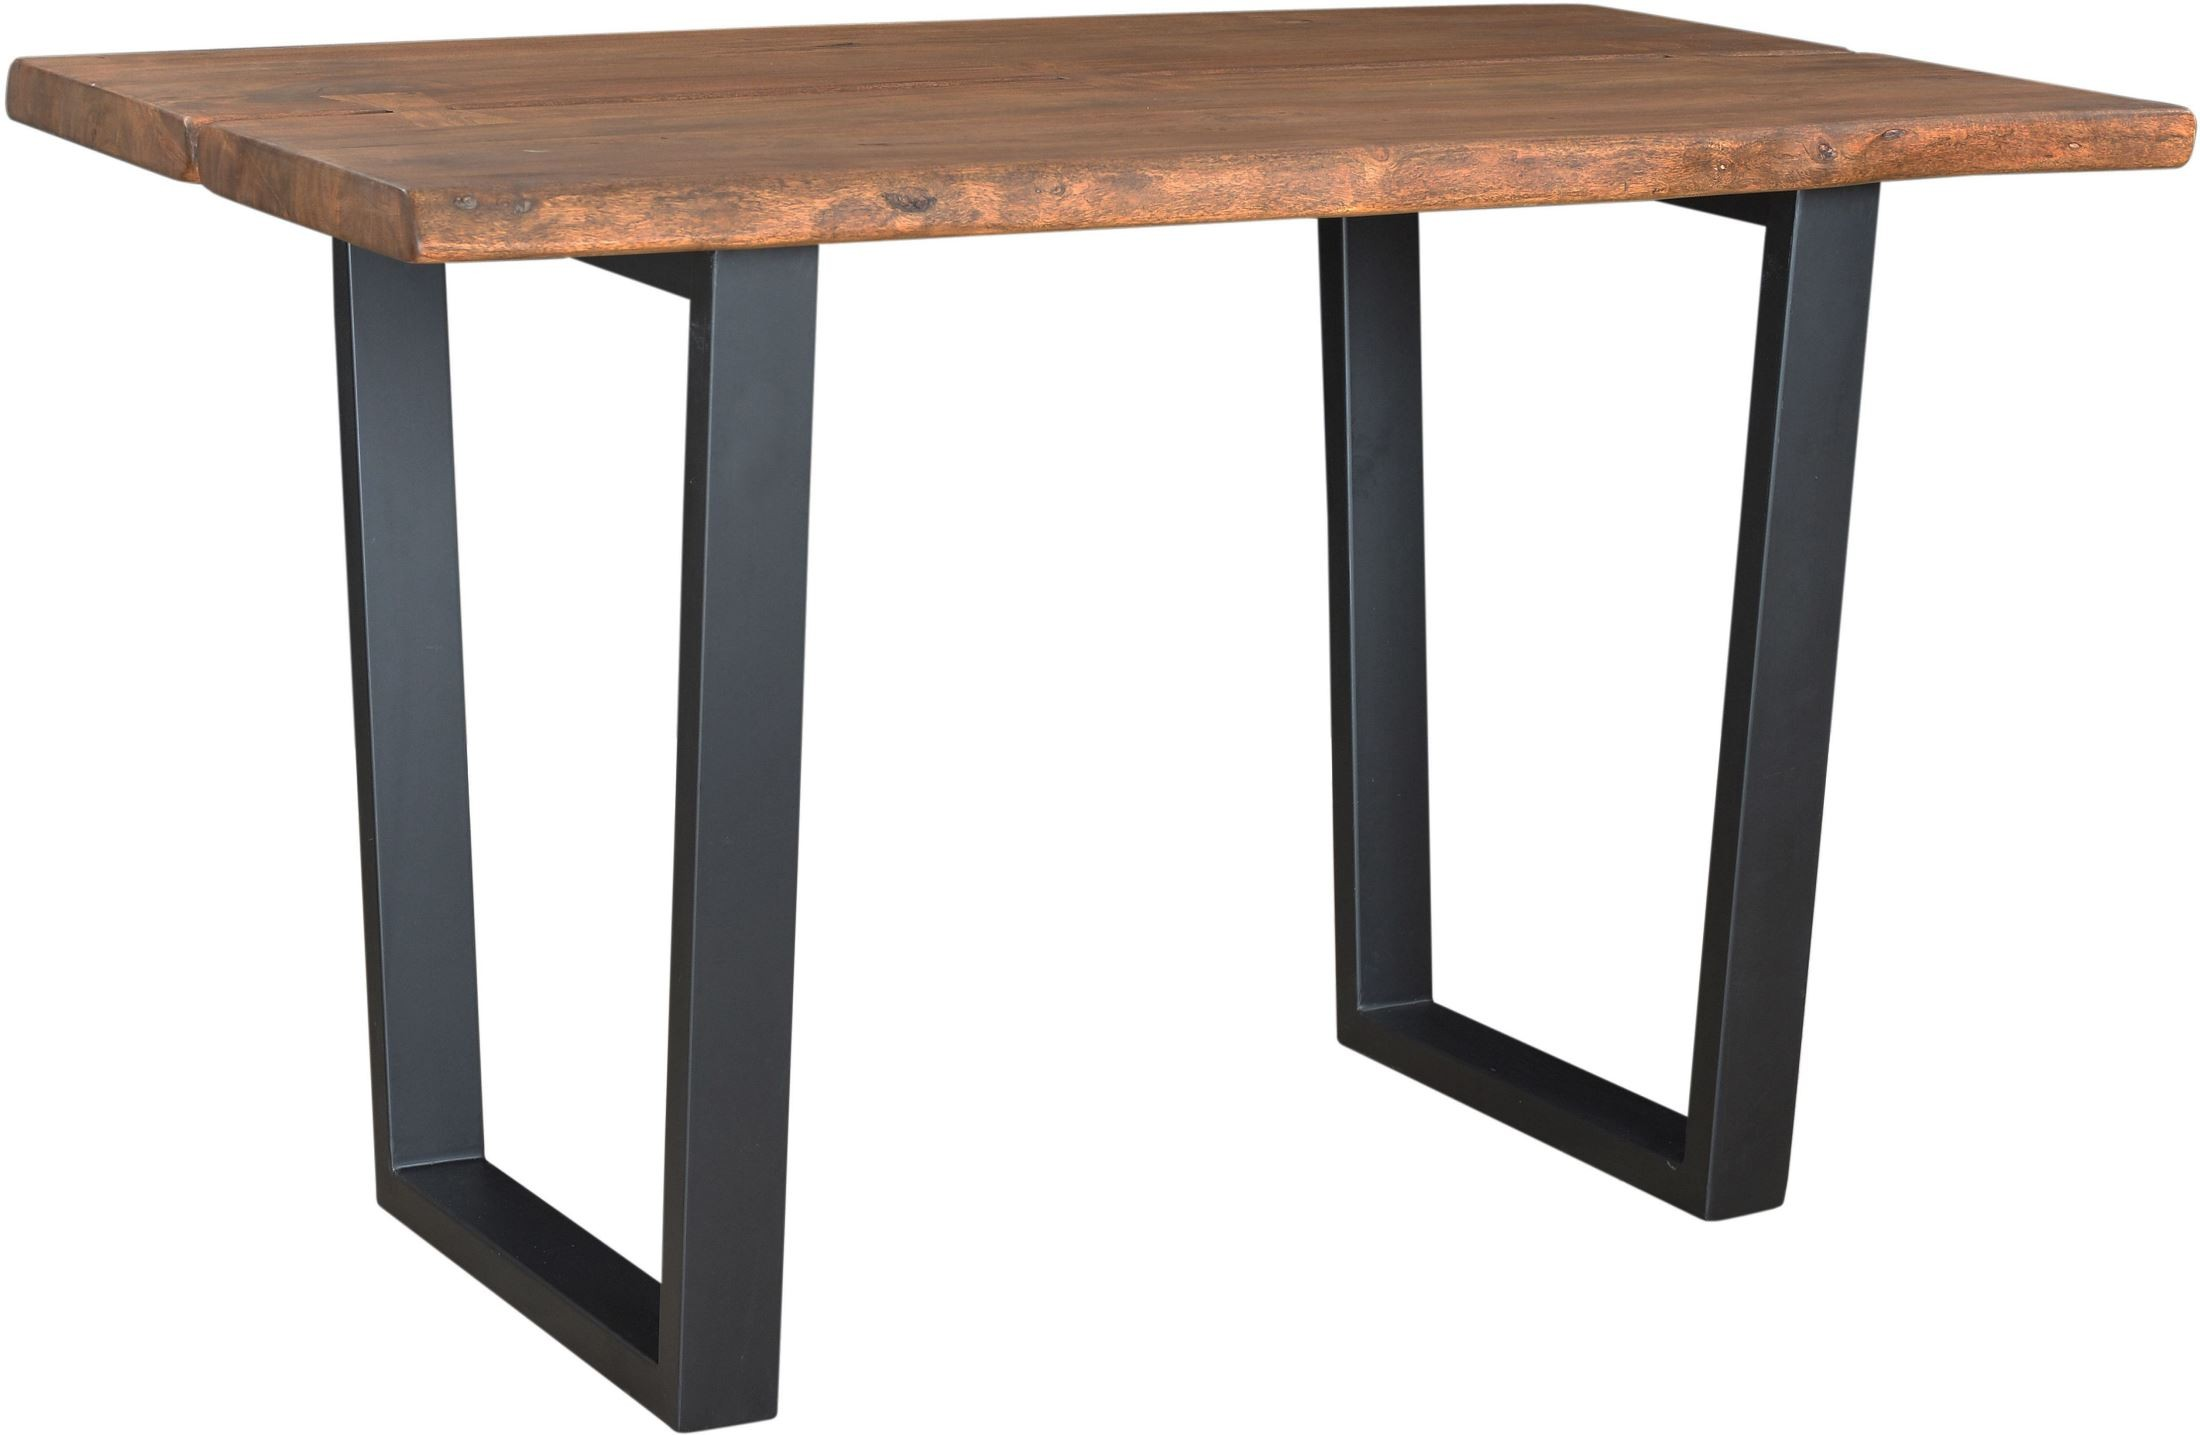 sequoia h1y brown counter height dining table from coast to coast coleman furniture. Black Bedroom Furniture Sets. Home Design Ideas